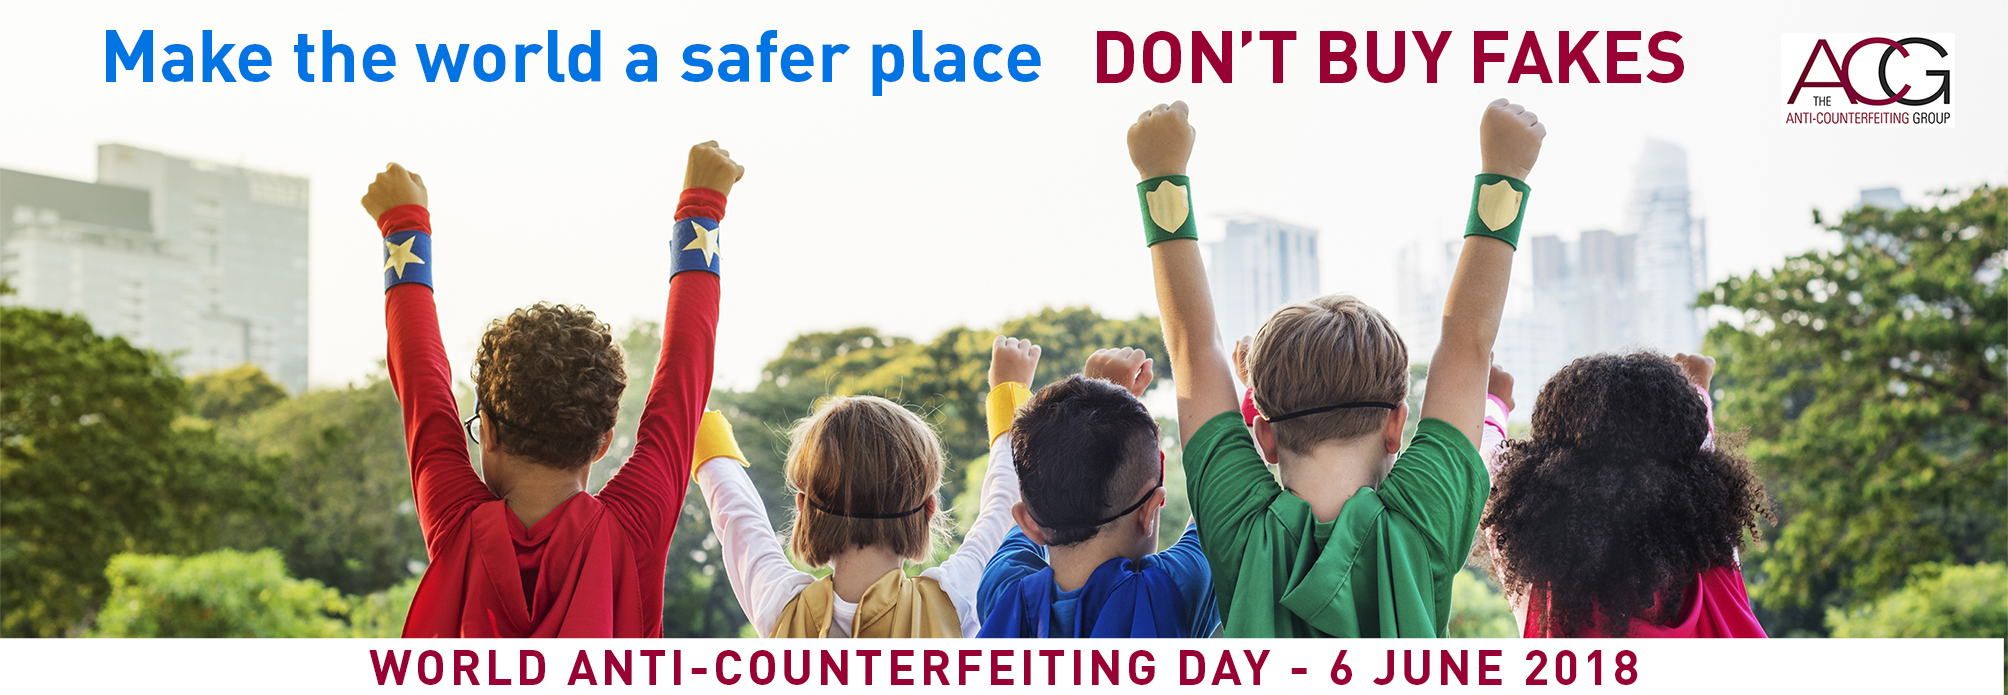 World Anti-Counterfeiting Day 2018 To Take Place On 6 June